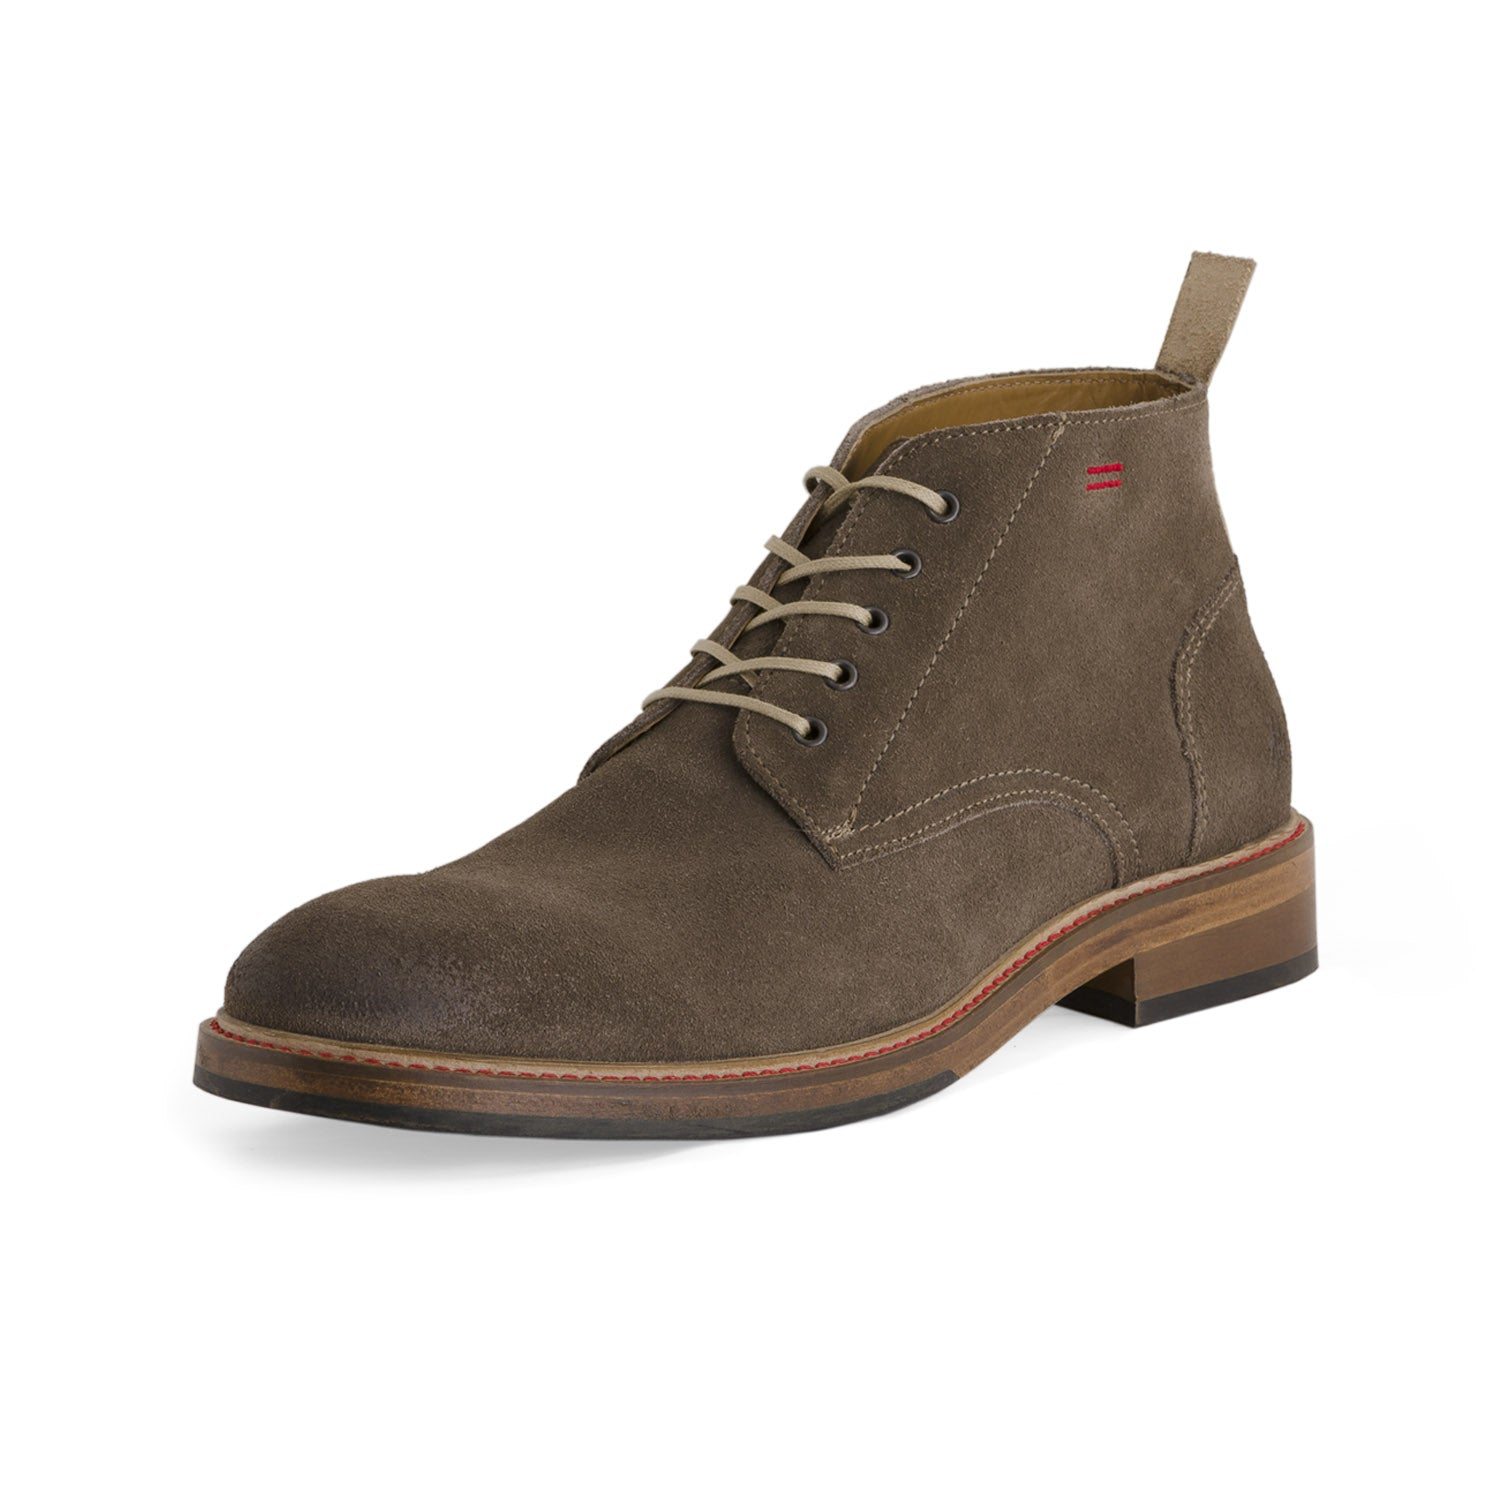 The Limited-Edition Desert Boot (6 color options) - NiK Kacy